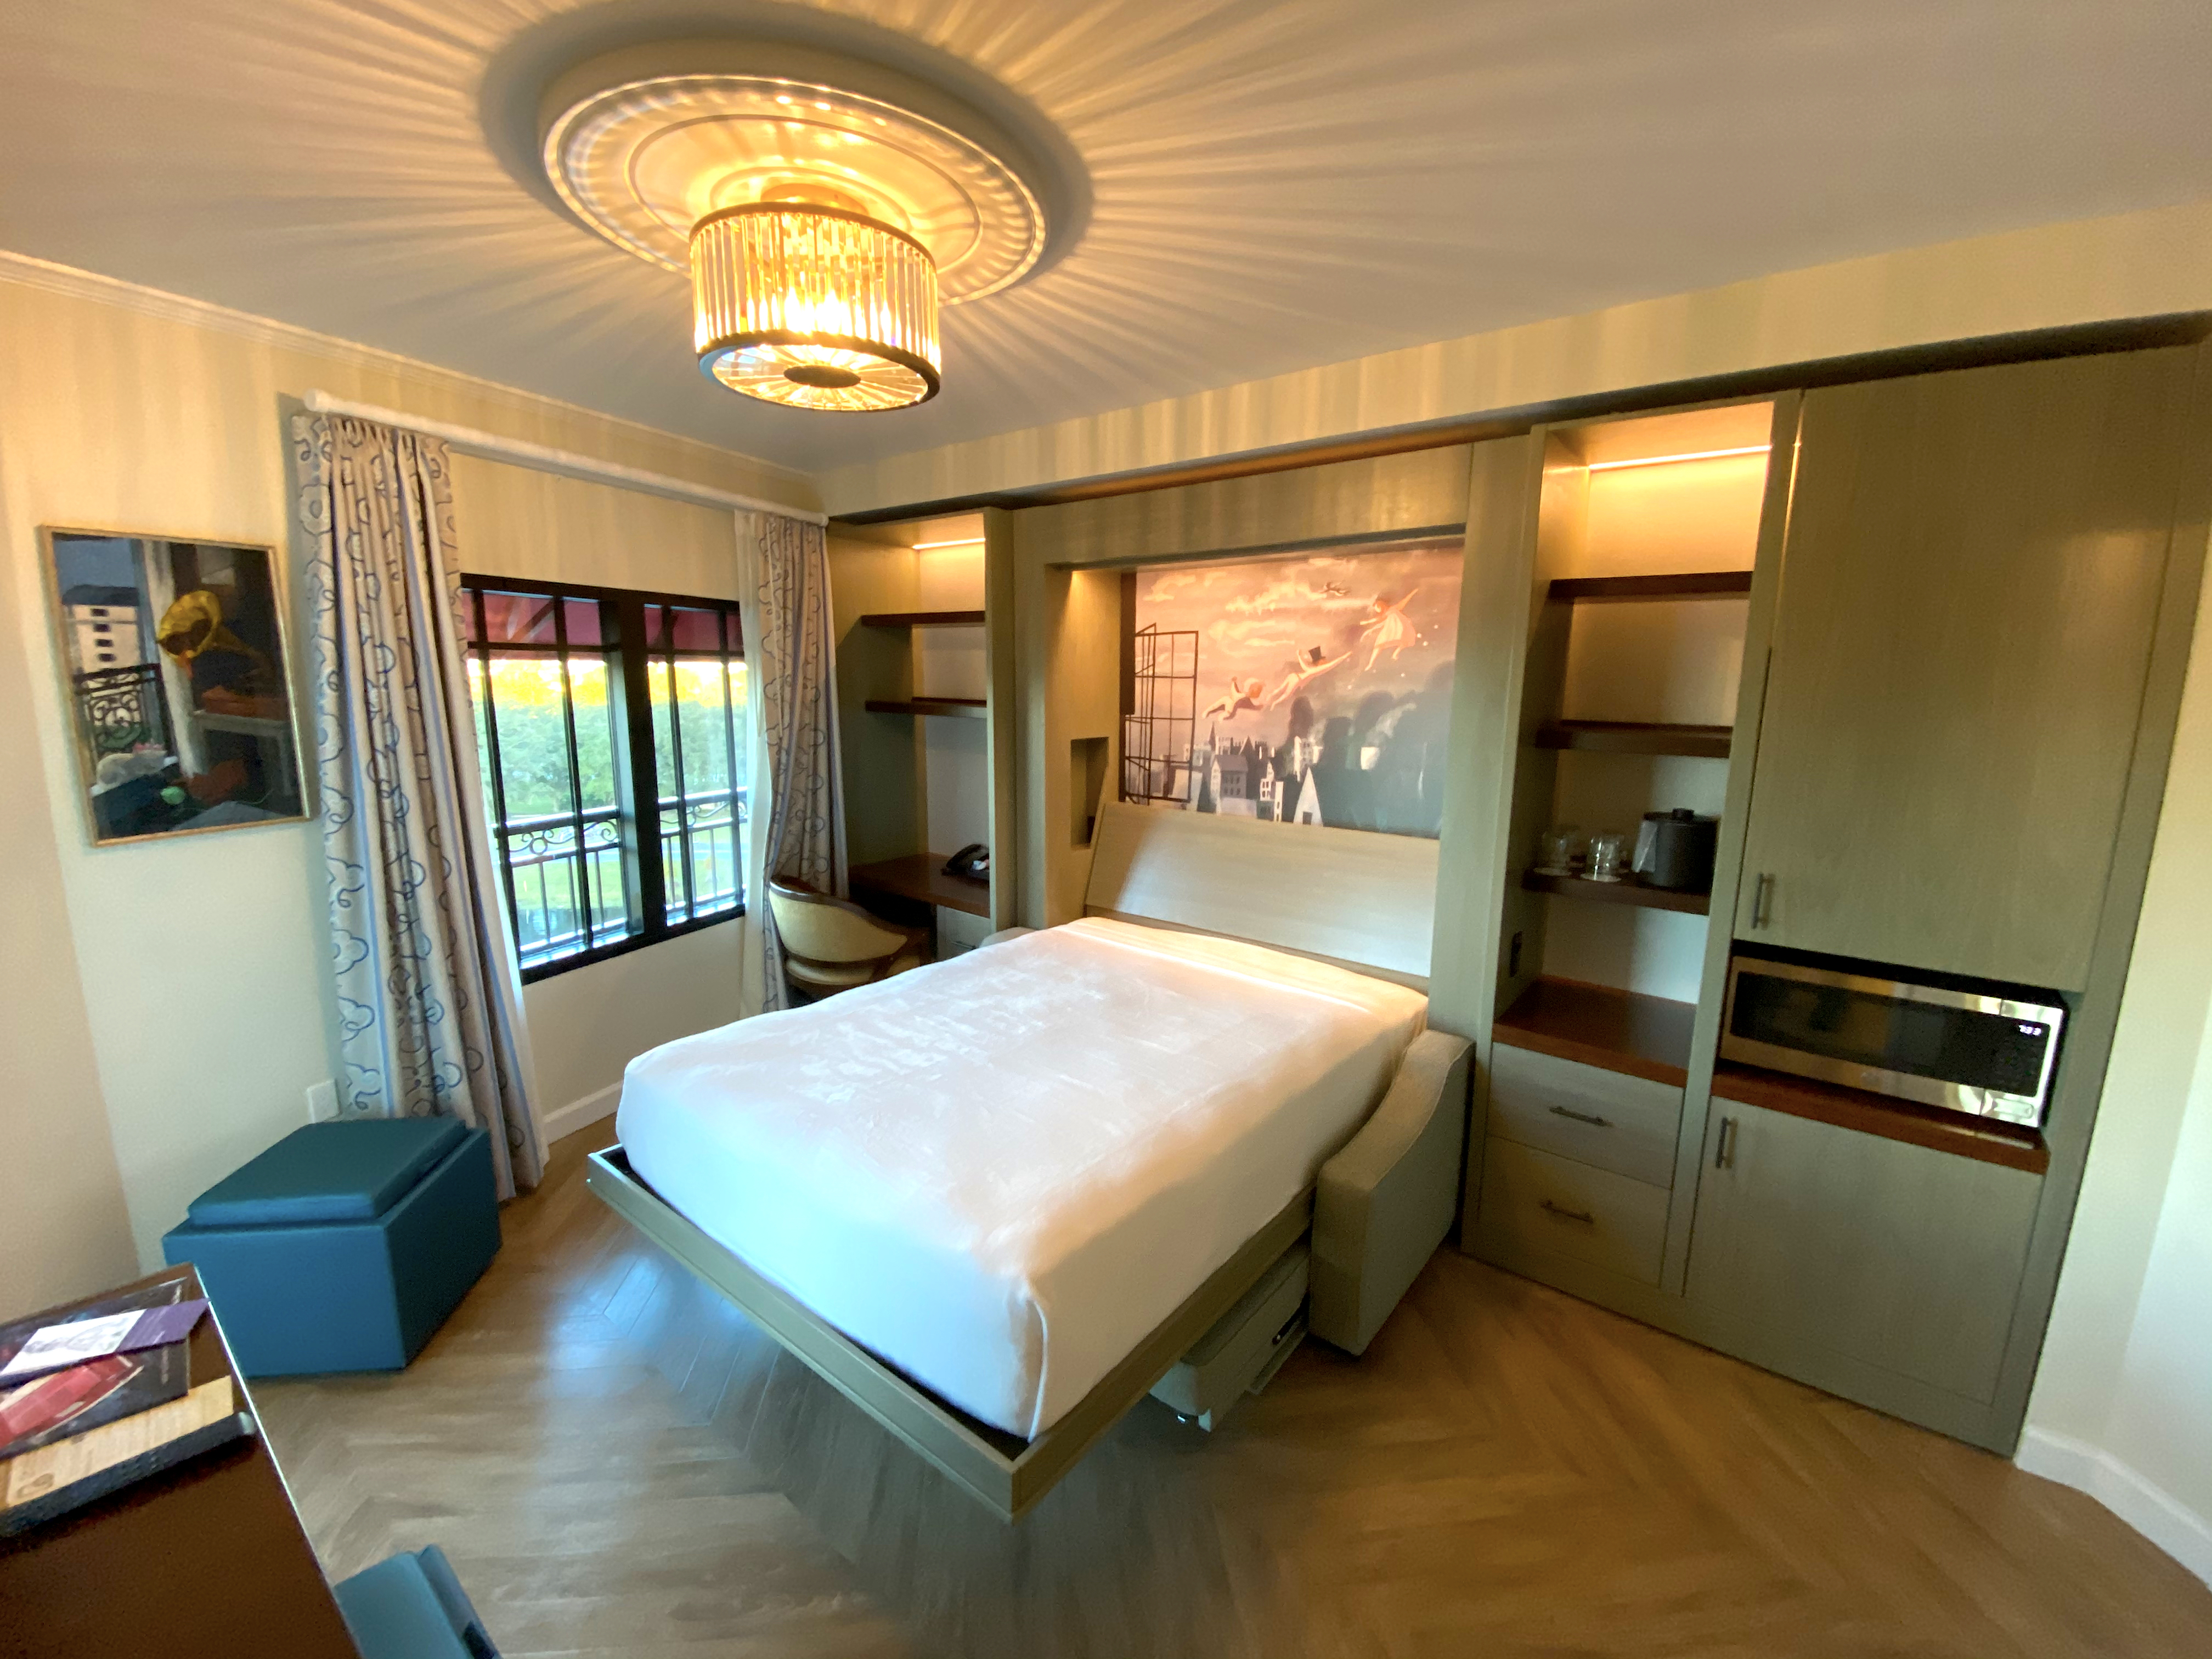 Picture of: Guests Asked Not To Use Any Wall Mounted Beds Including Tower Studios As Issues Persist At Disney S Riviera Resort Wdw News Today